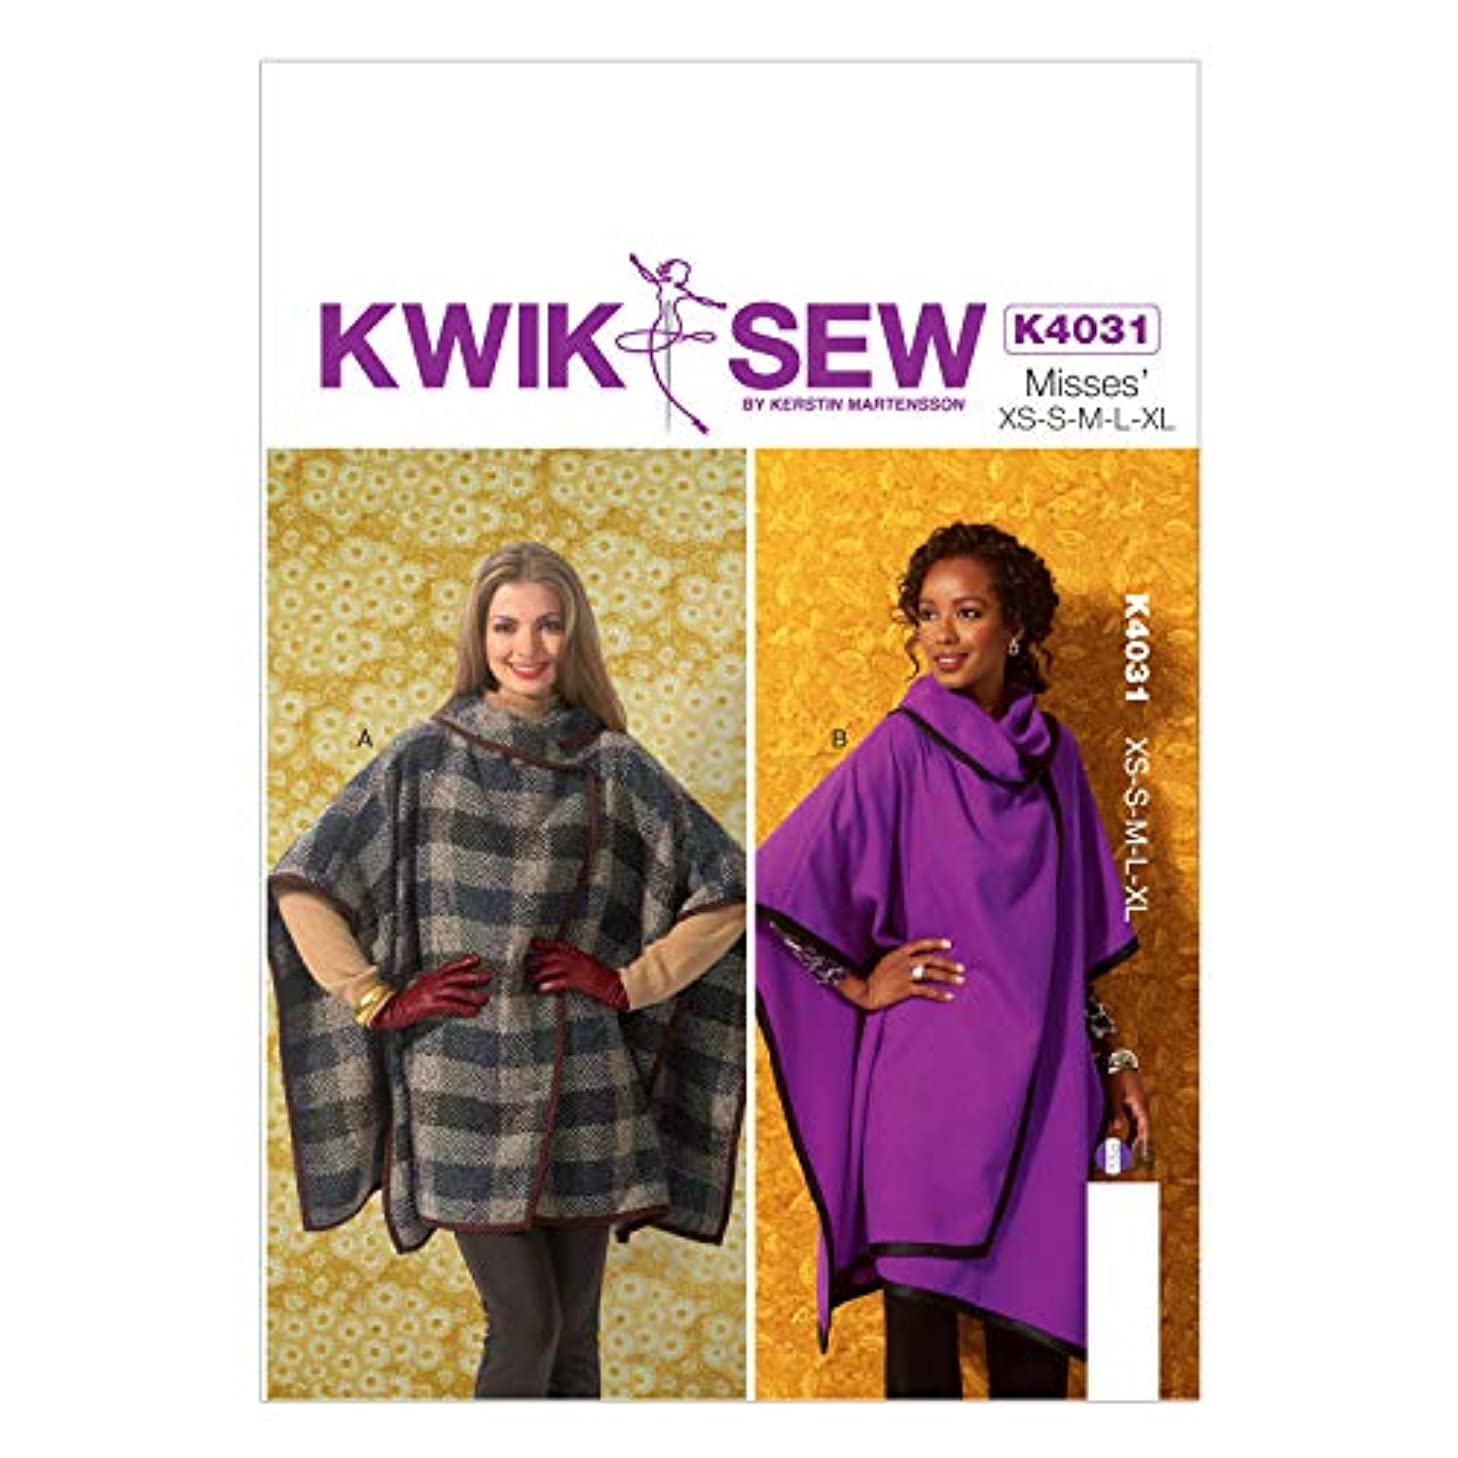 KWIK-SEW PATTERNS K4031 Misses' Wraps Sewing Template